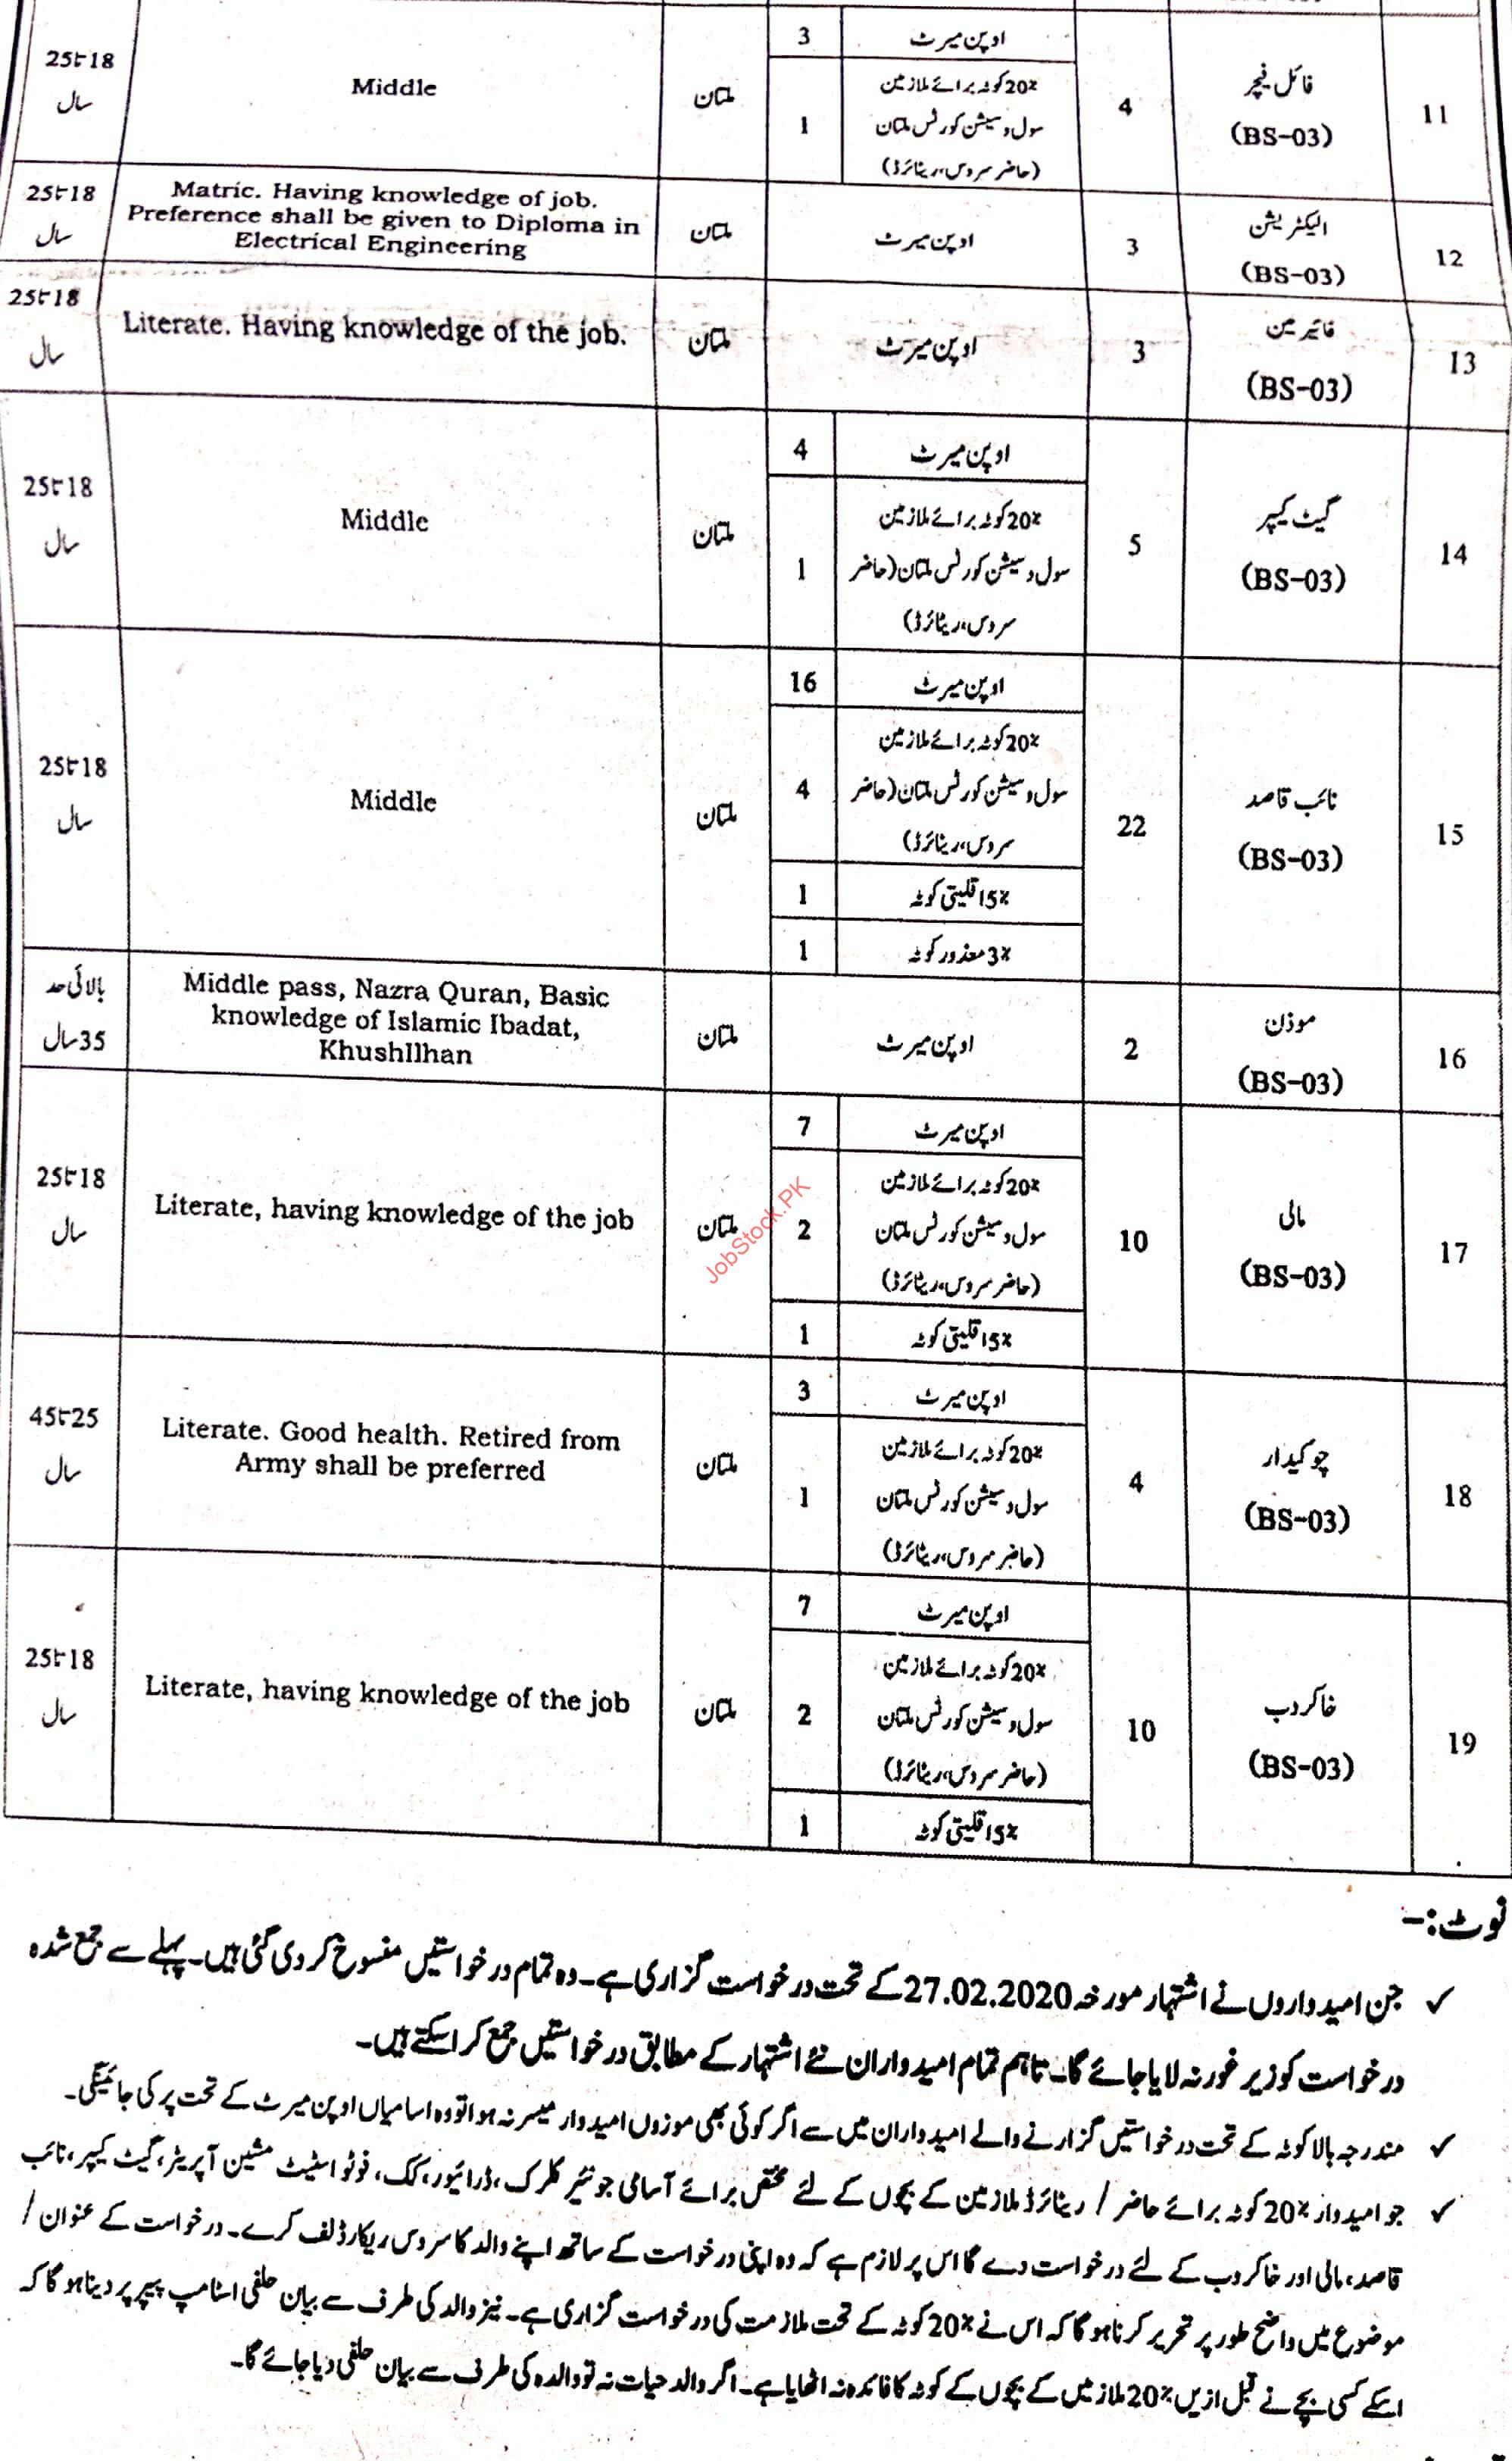 Session Court Multan Jobs Page 2